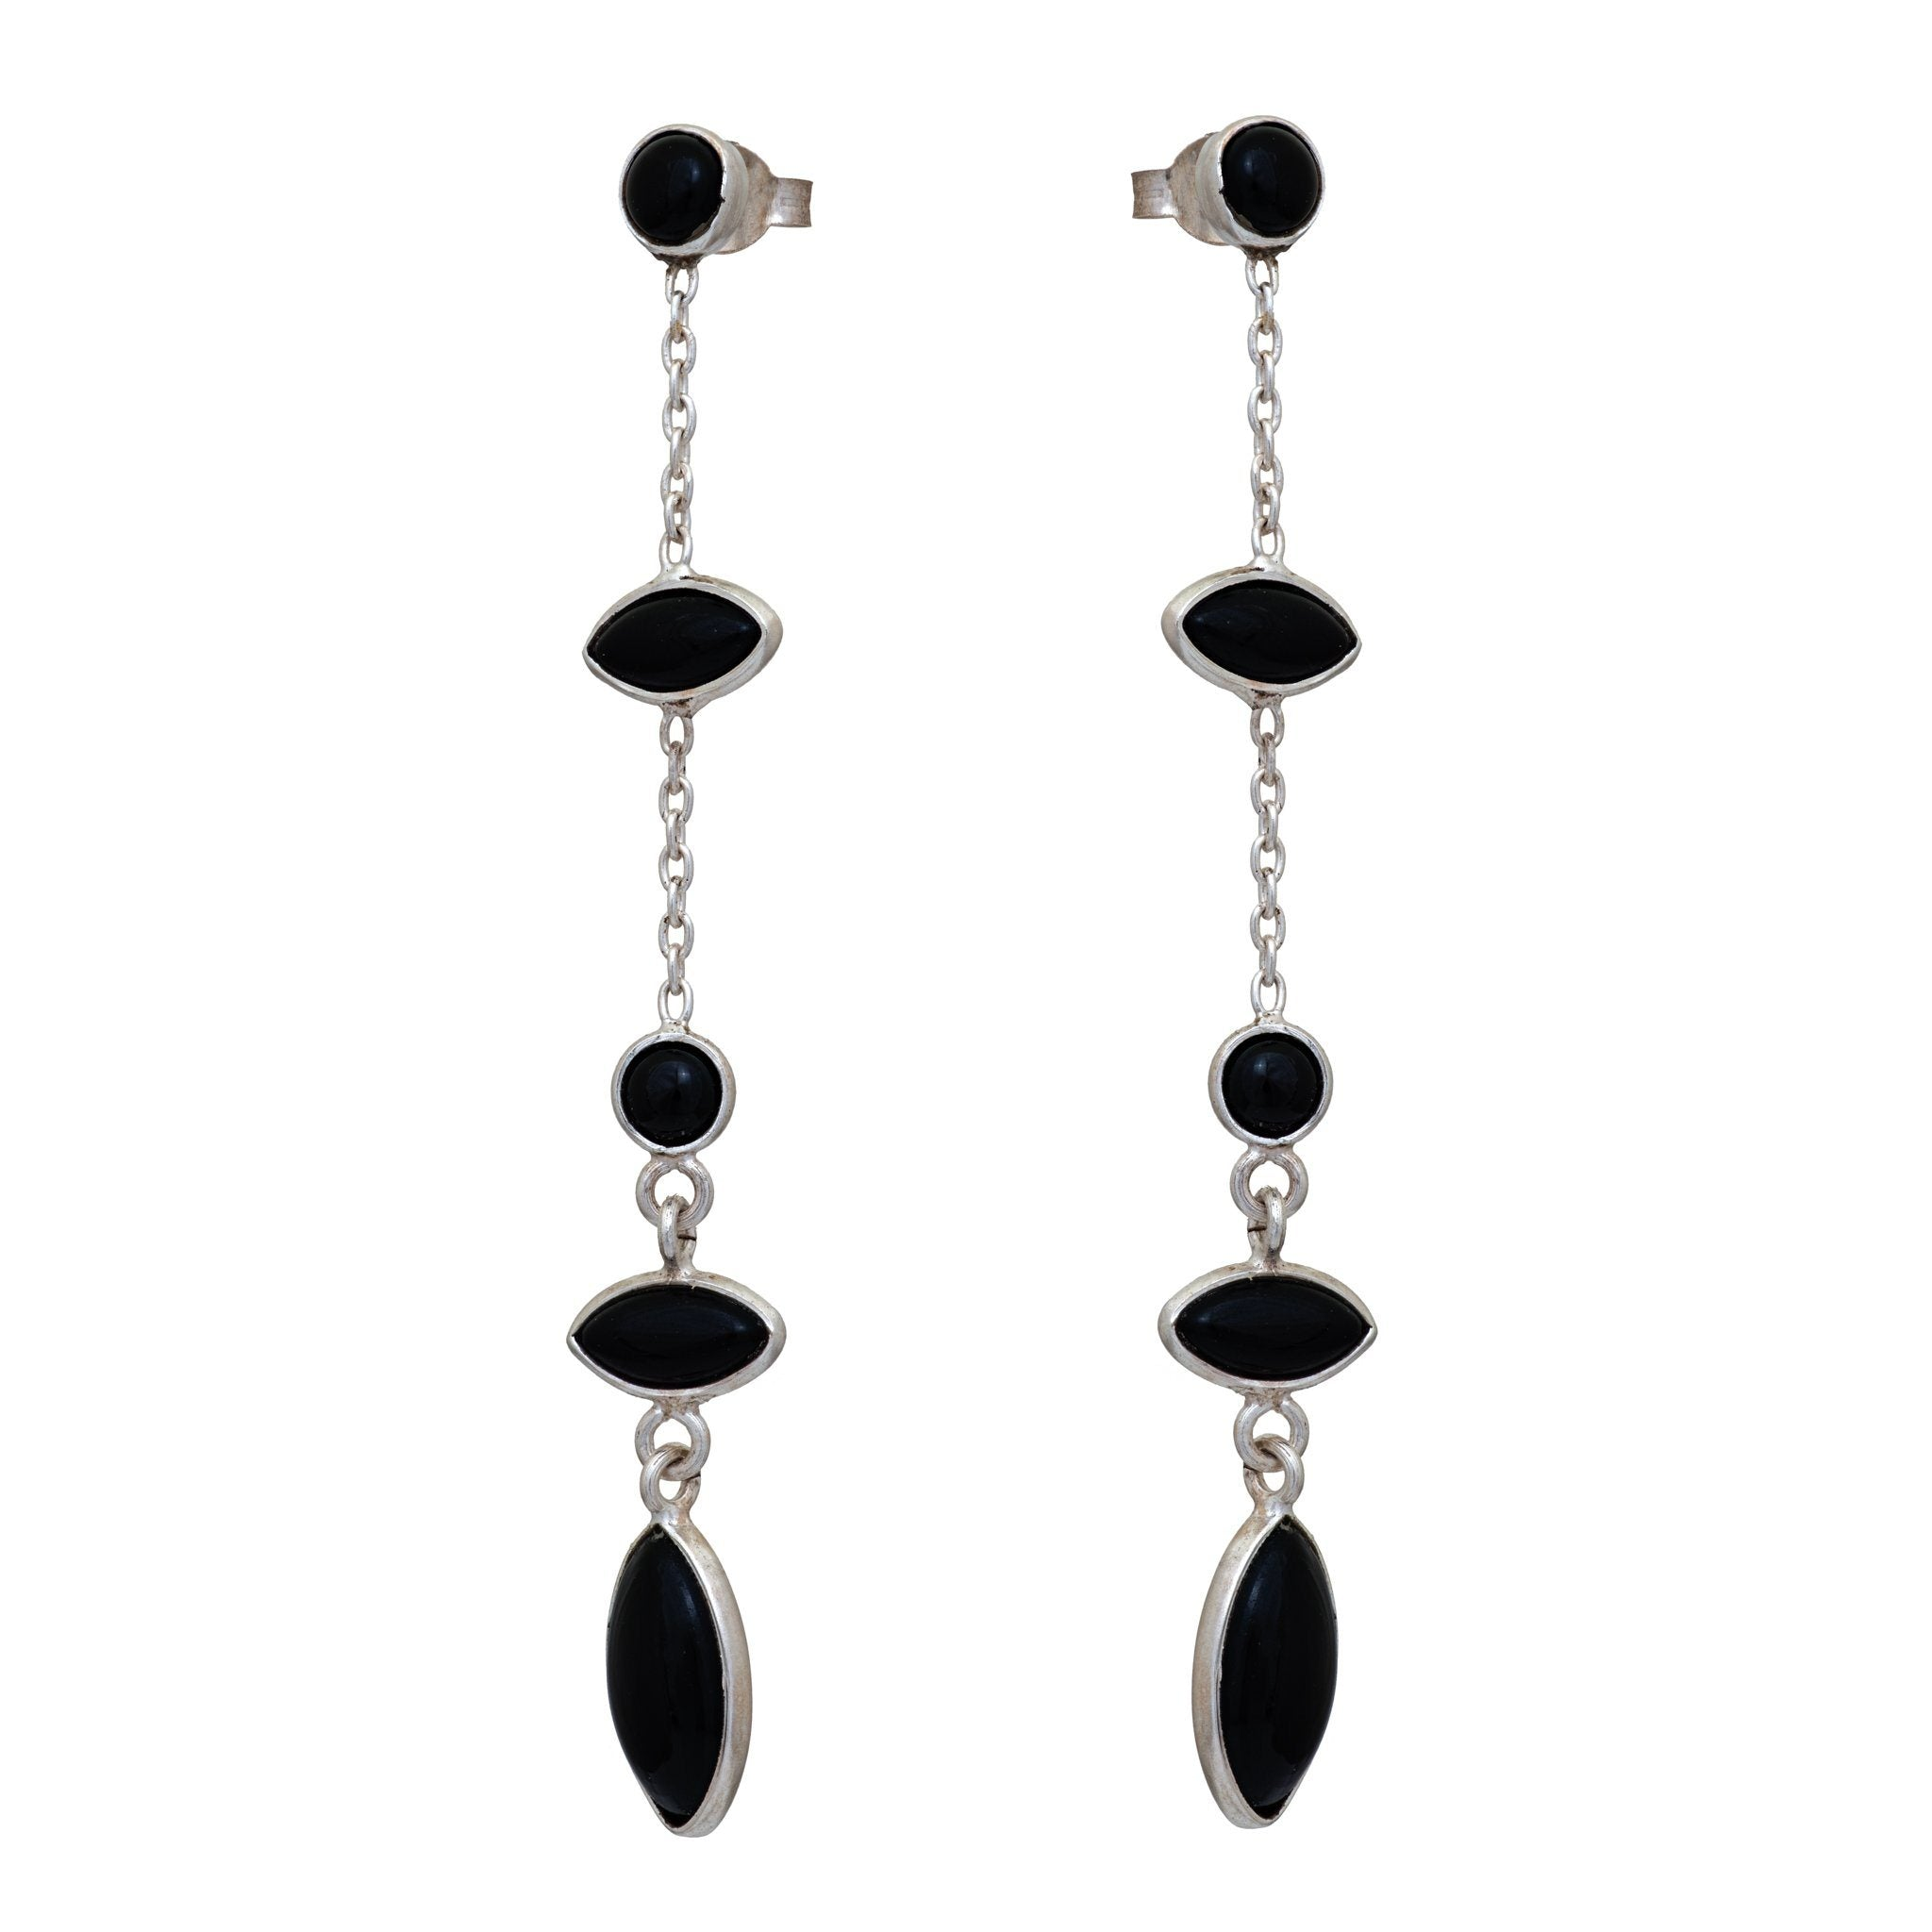 TA black onyx silver earrings - MadamSiam